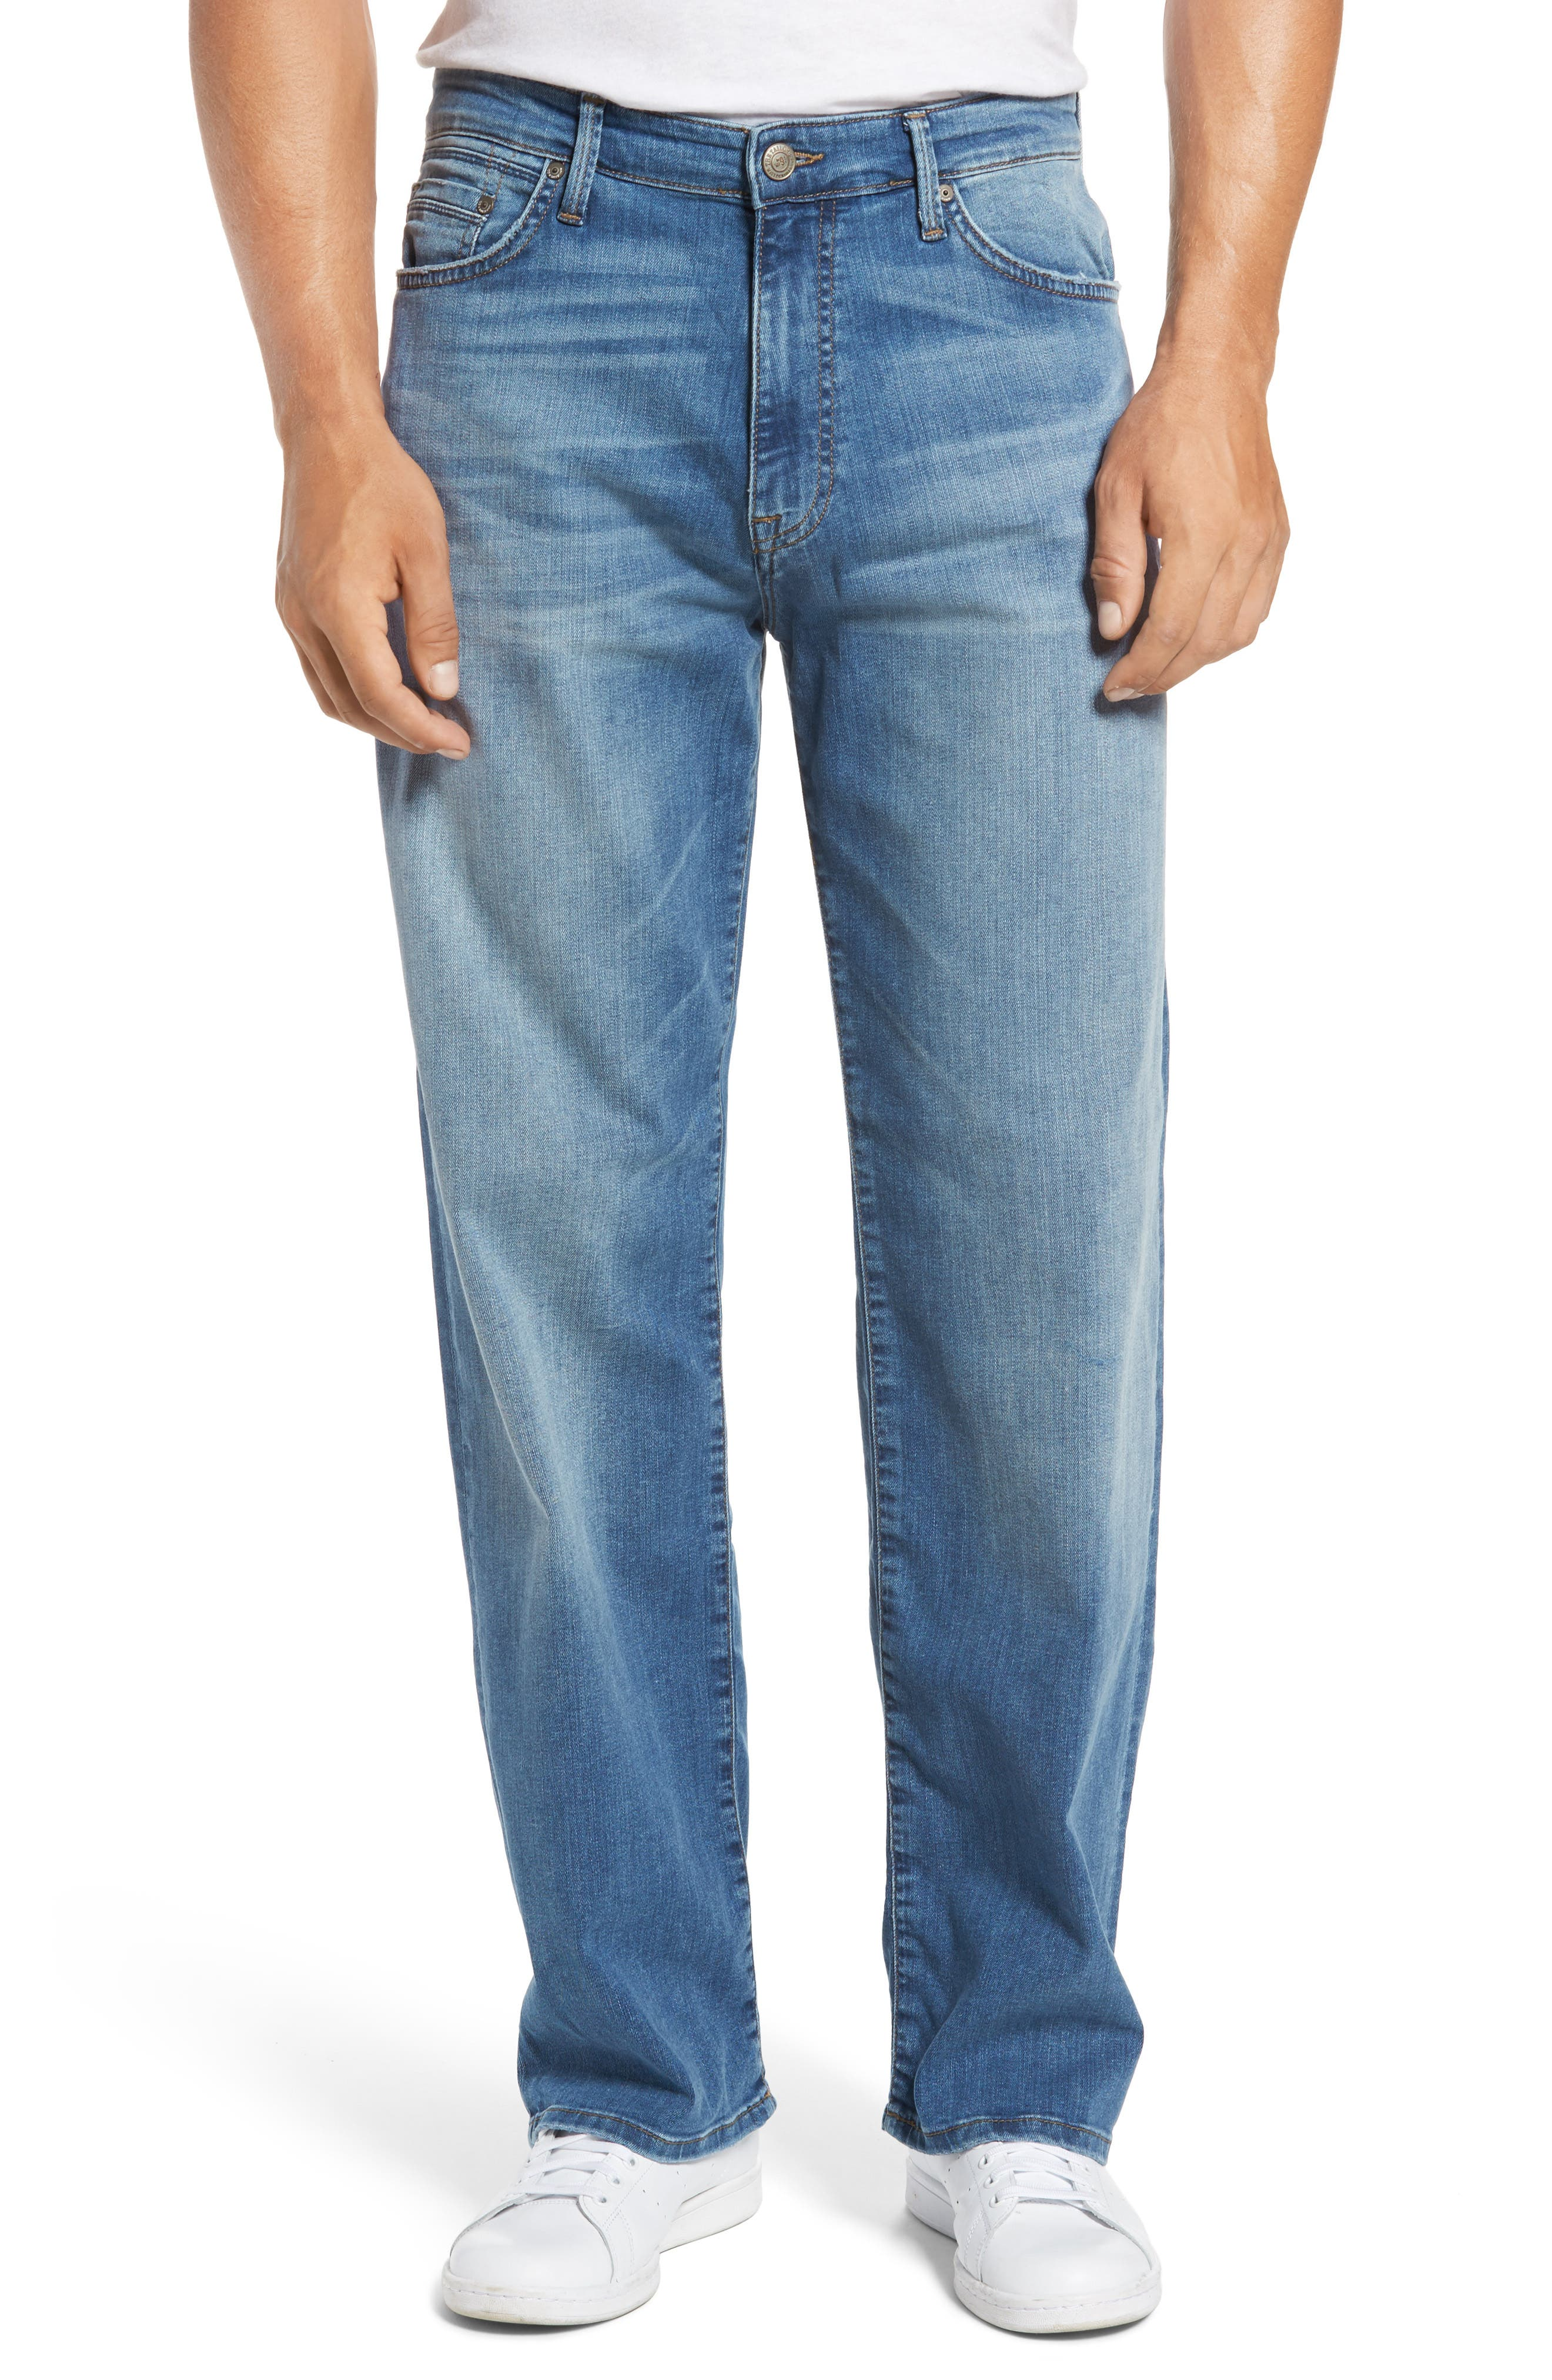 Max Relaxed Fit Jeans,                         Main,                         color, Mid Indigo Williamsburg